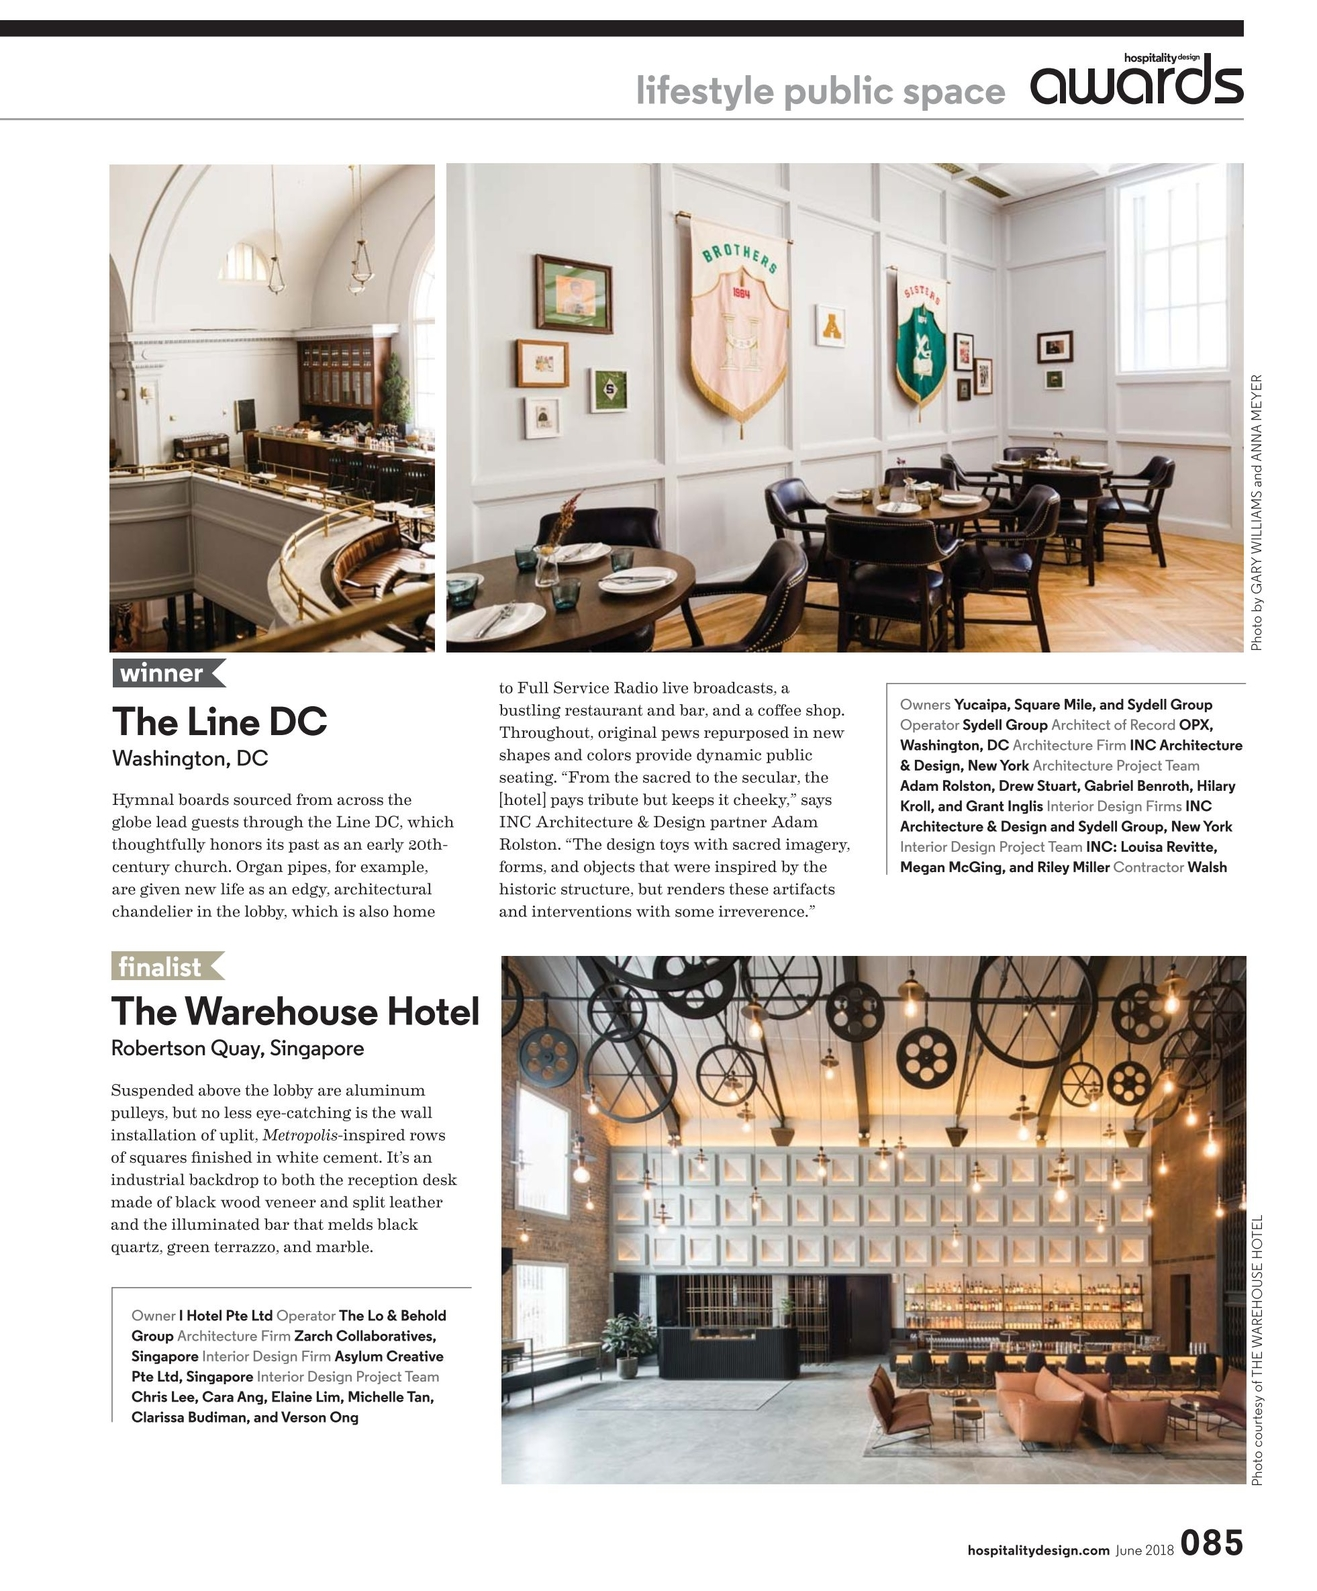 Design Firms In Singapore Hospitality Design June 2018